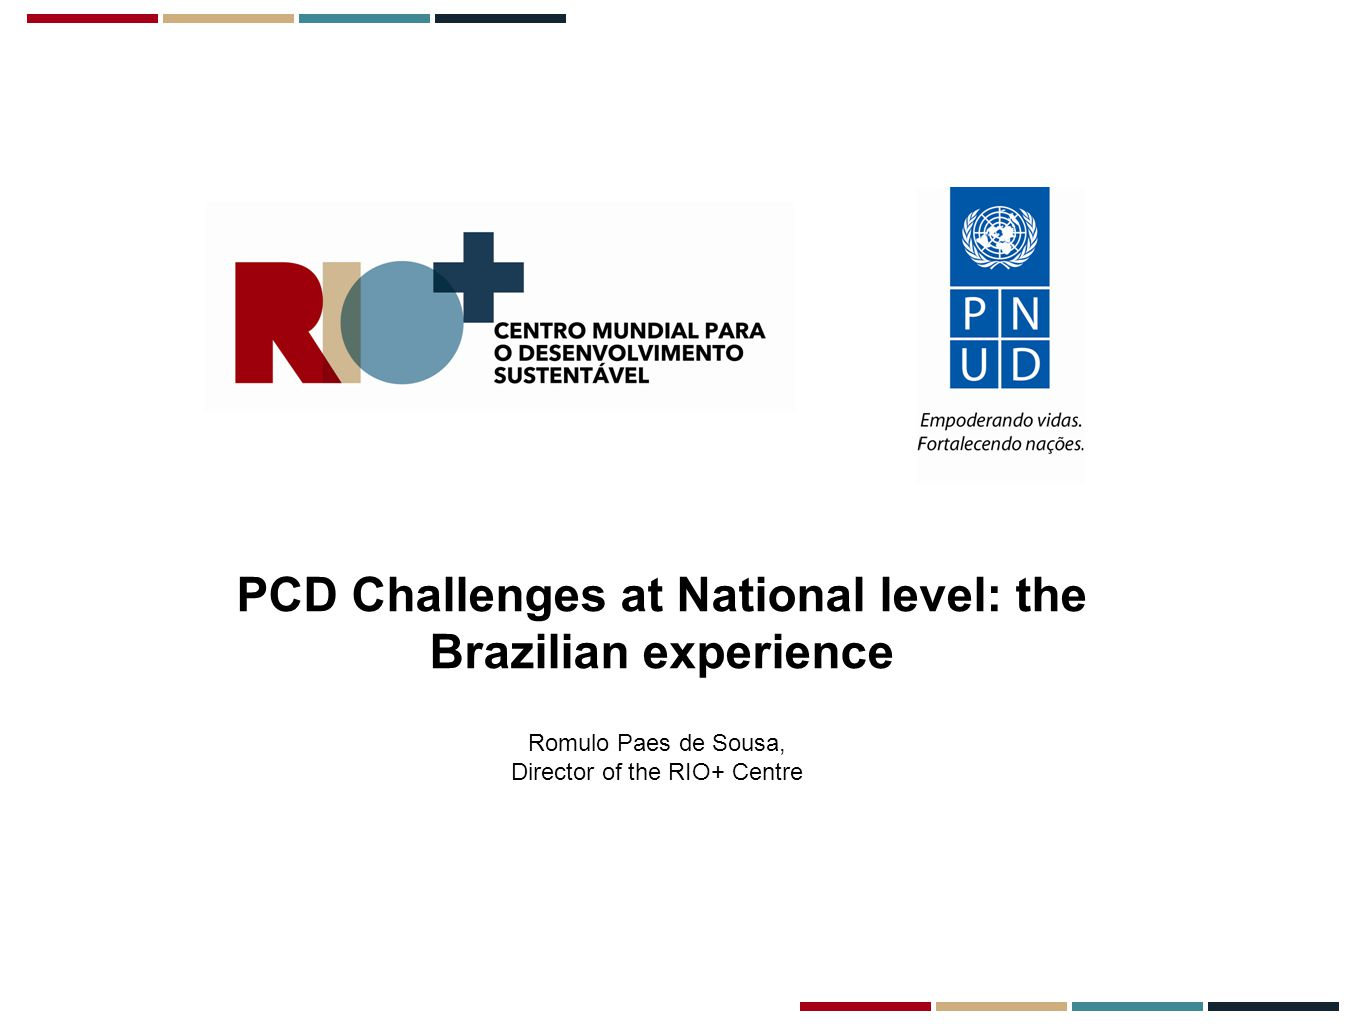 PCD Challenges at National level: the Brazilian experience Romulo Paes de Sousa, Director of the RIO+ Centre